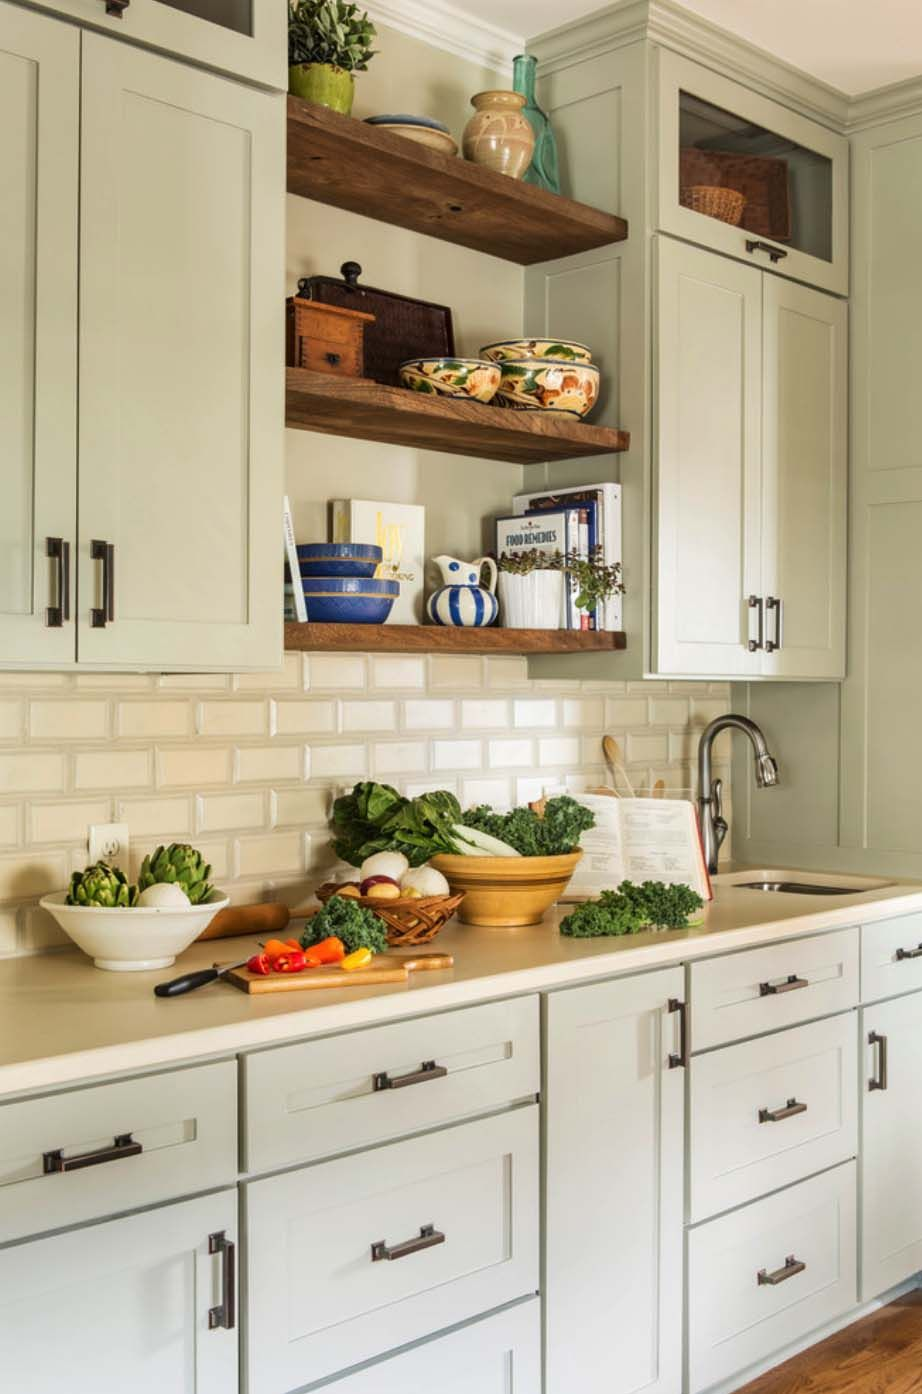 Charming Little Rock Residence Gets A Refreshing Eclectic Style Makeover New Kitchen Cabinets Rustic Kitchen Rustic Kitchen Decor